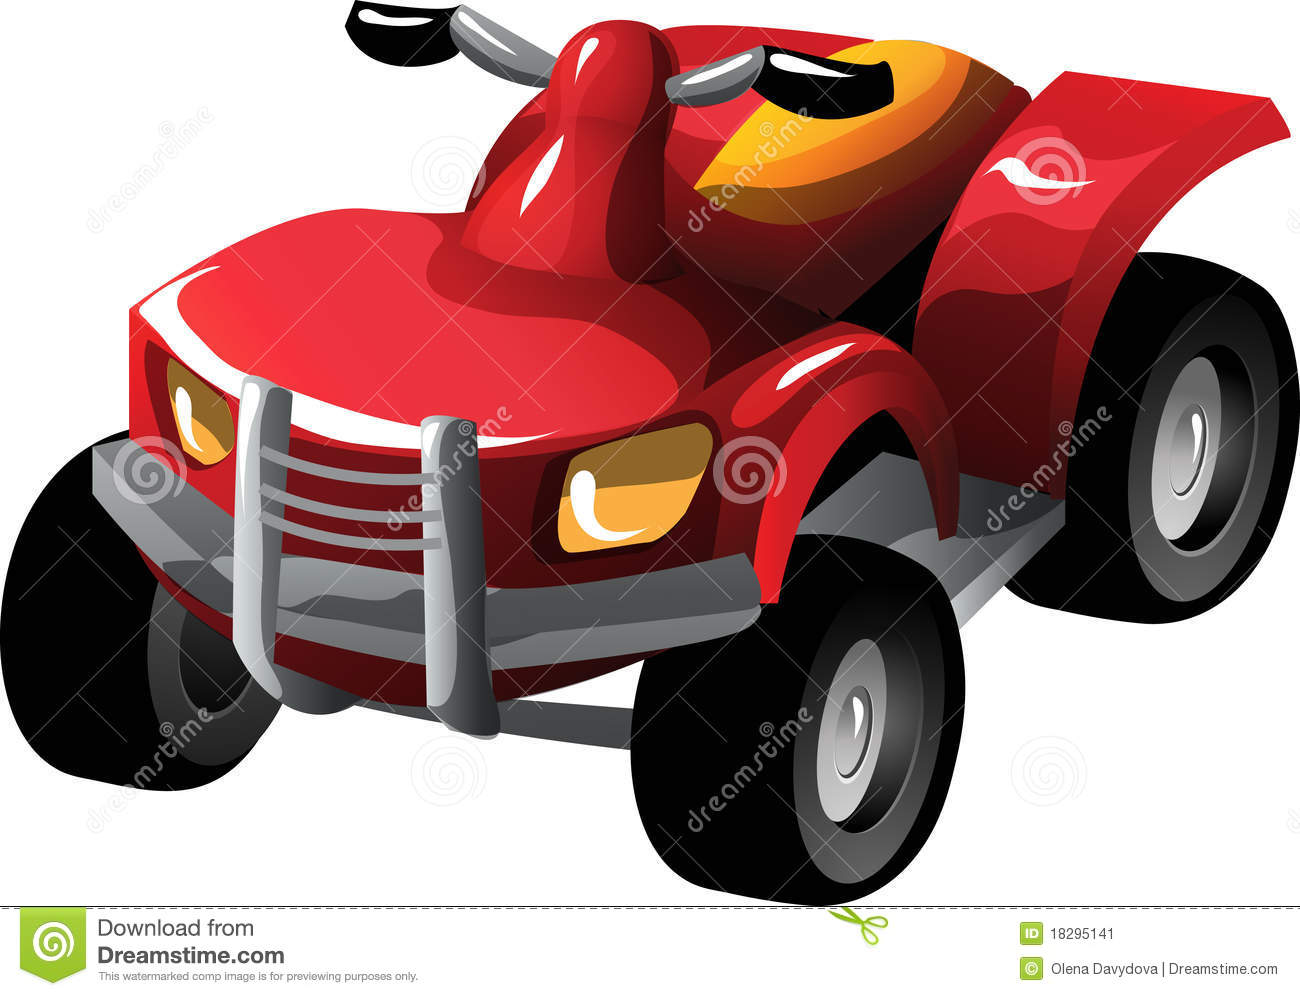 Cartoon Quad Bike Stock Image.